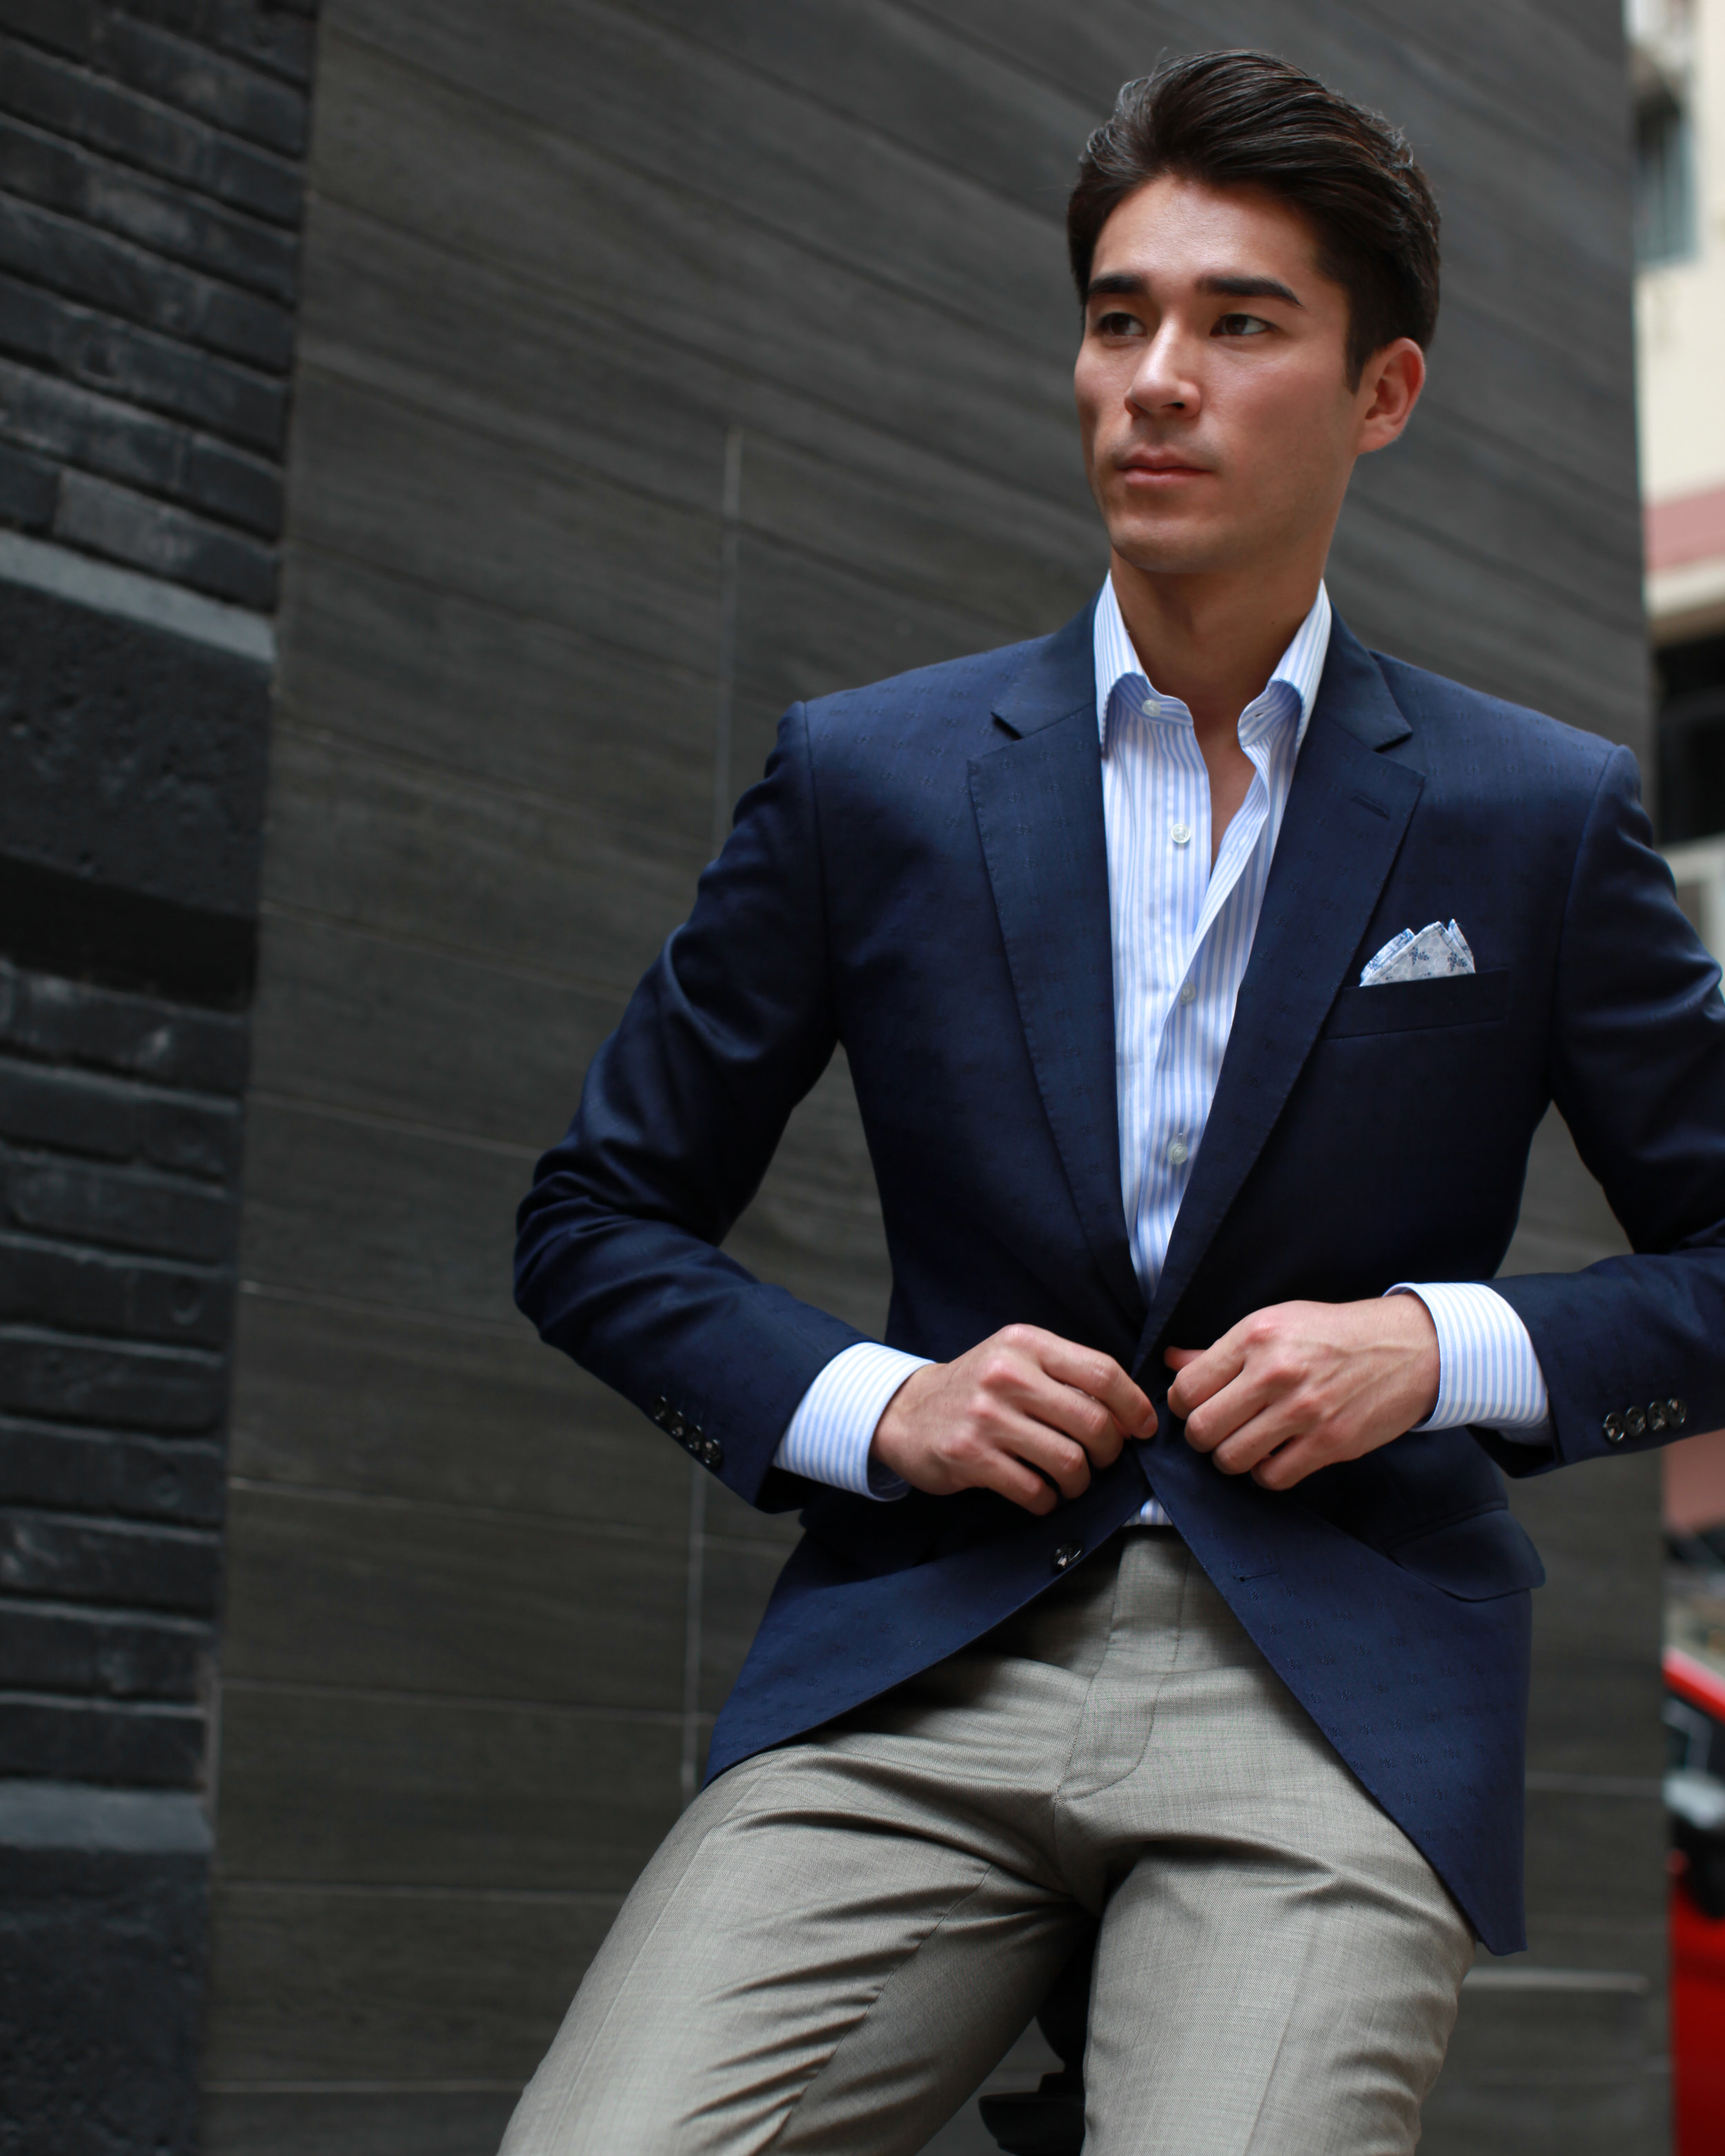 Stay sharp - The high twist yarns in fresco lends your suit a crisp, structured look.  Throw it in your suitcase and it's ready to wear to that meeting right after your morning flight. No wrinkles, no problem.